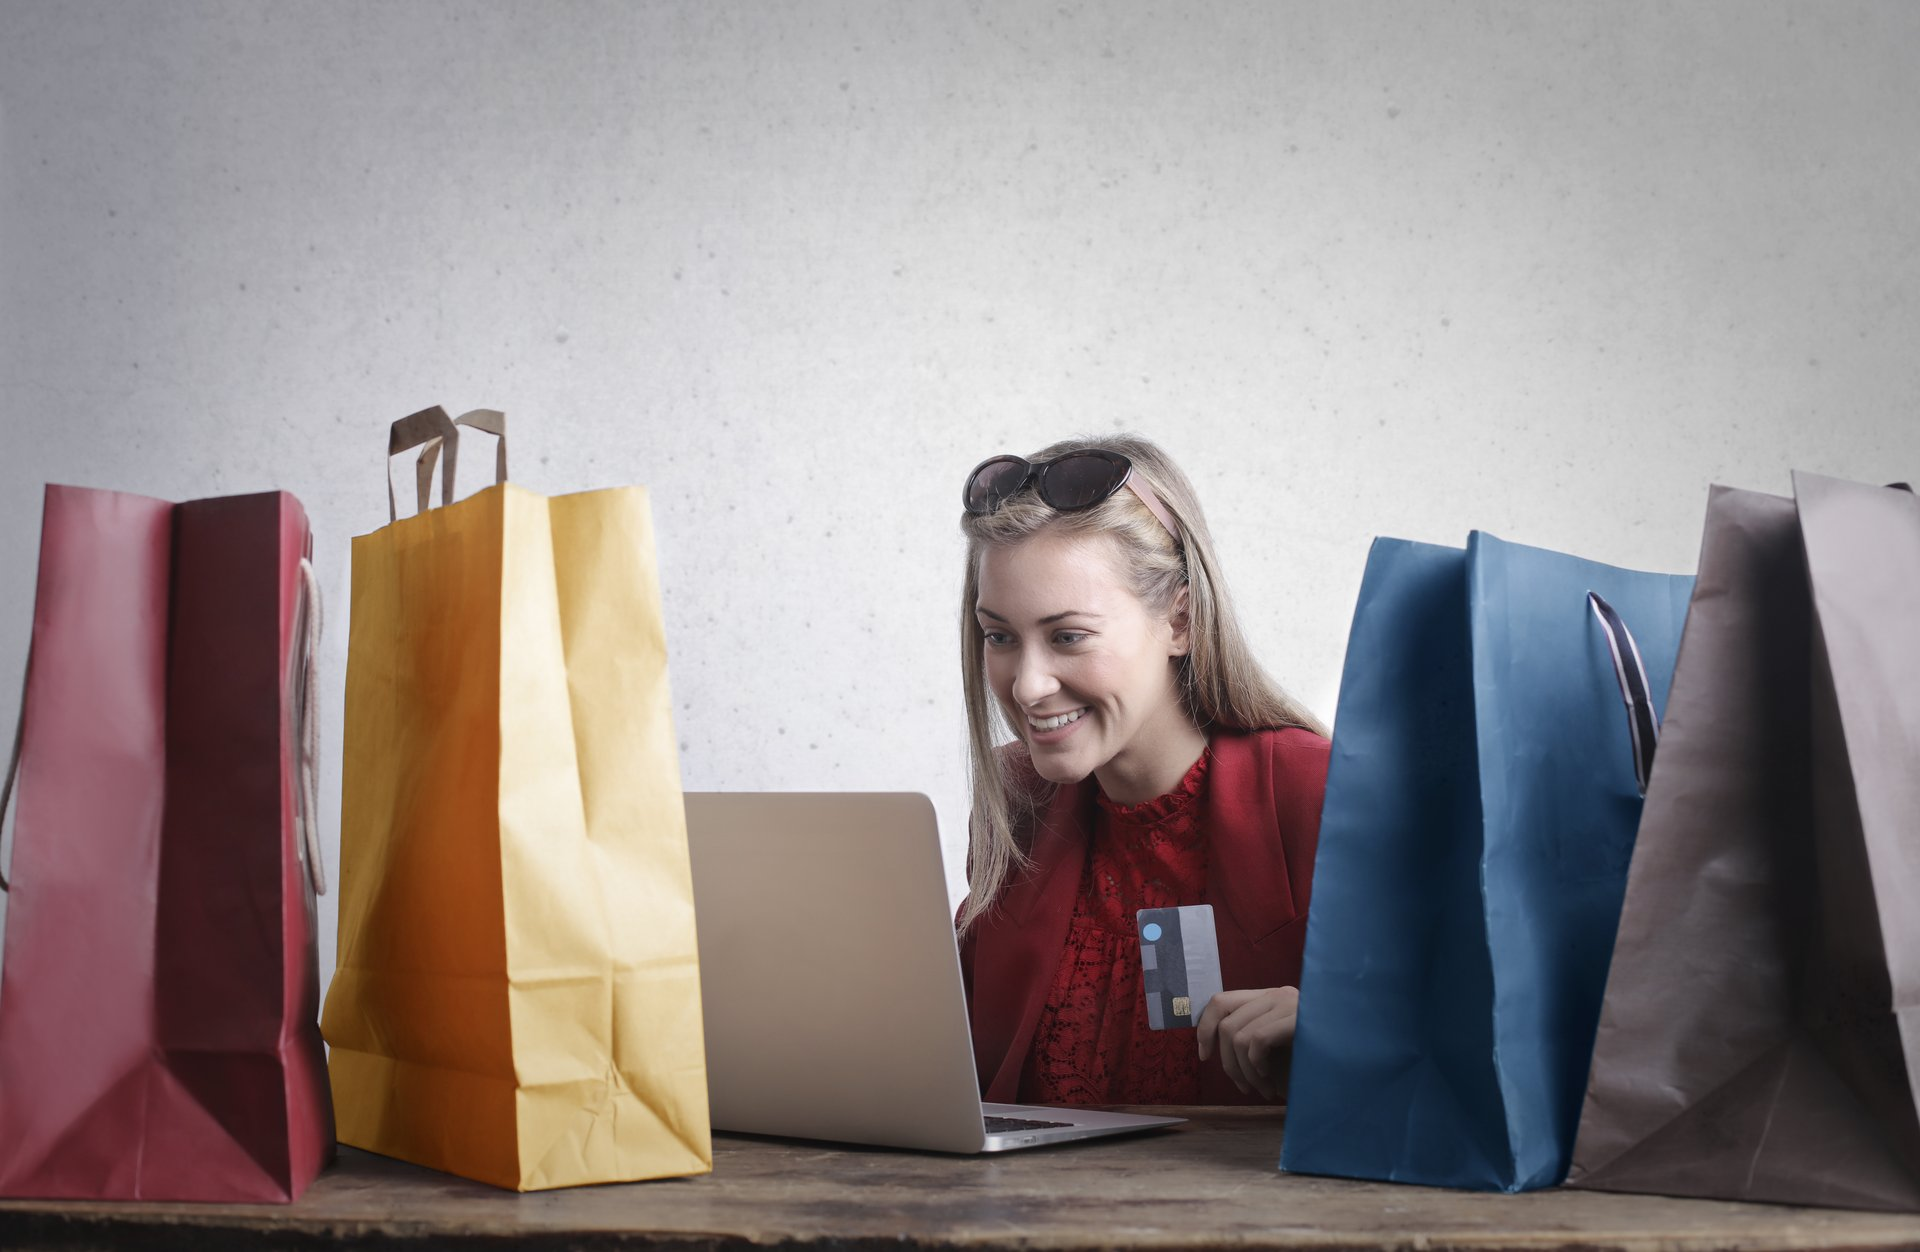 woman with credit card in hand surrounded by shopping bags